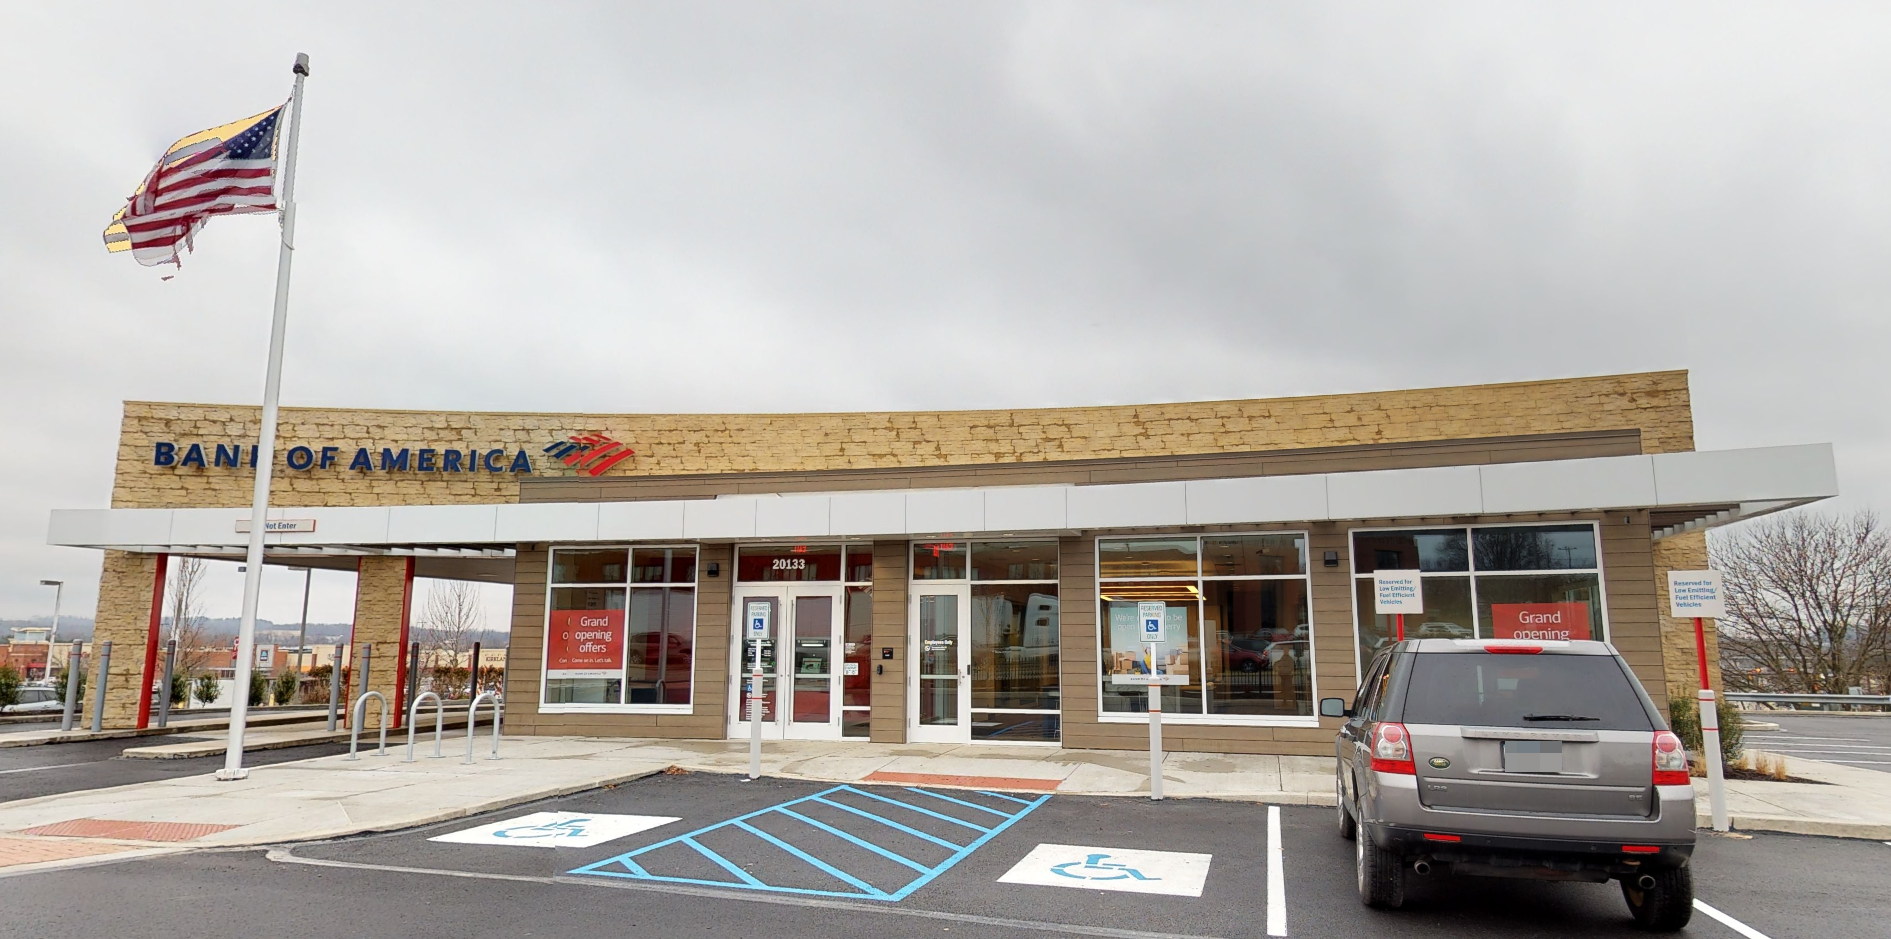 Bank of America financial center with drive-thru ATM | 20133 Route 19, Cranberry Township, PA 16066